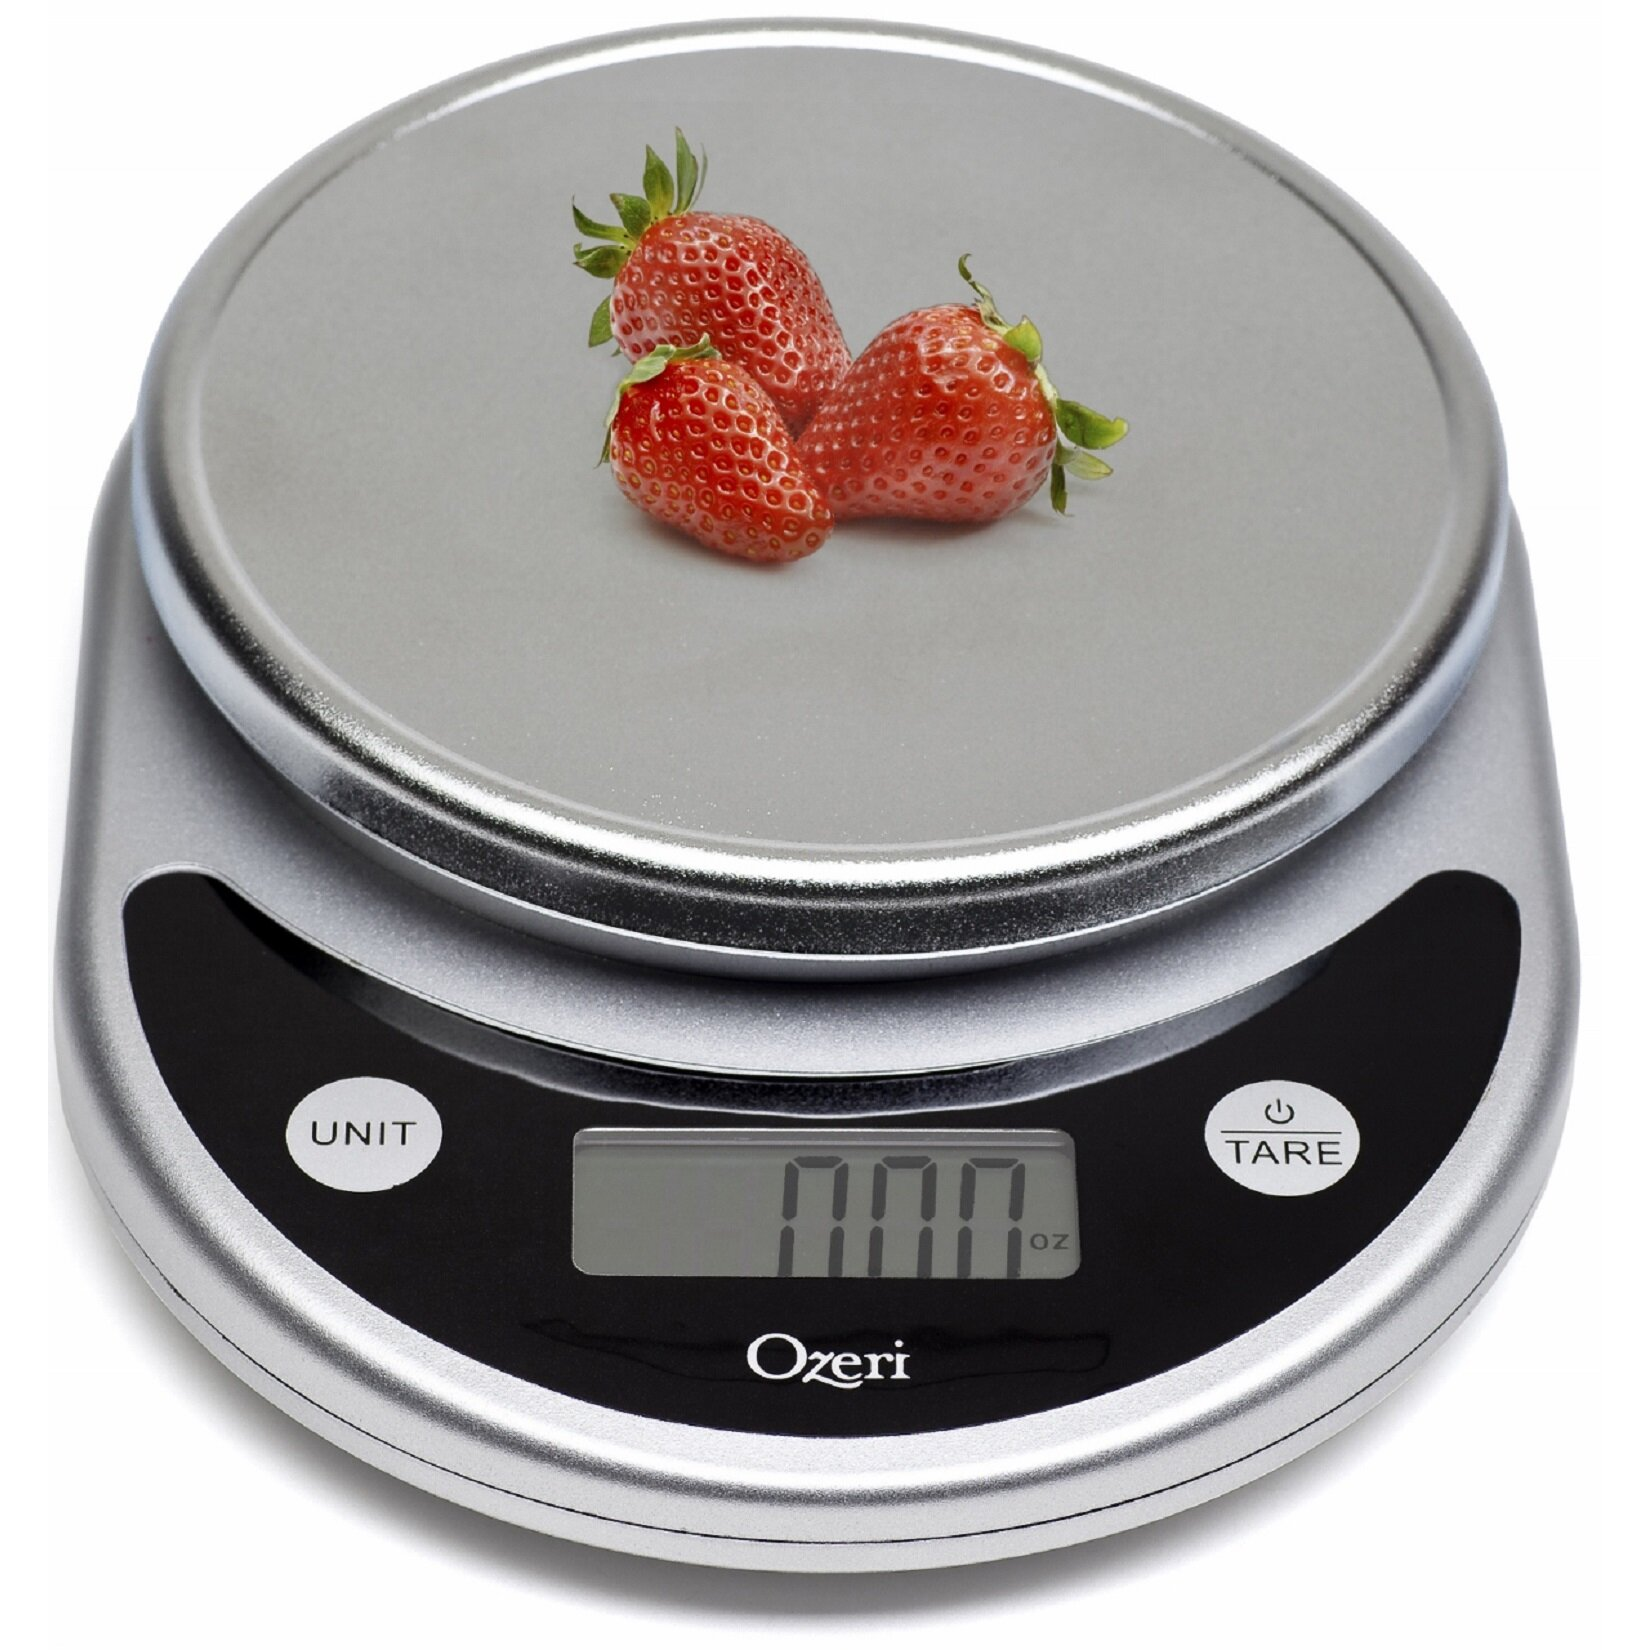 Ozeri Digital Kitchen Scale Review: Ozeri Pronto Digital Multifunction Kitchen And Food Scale